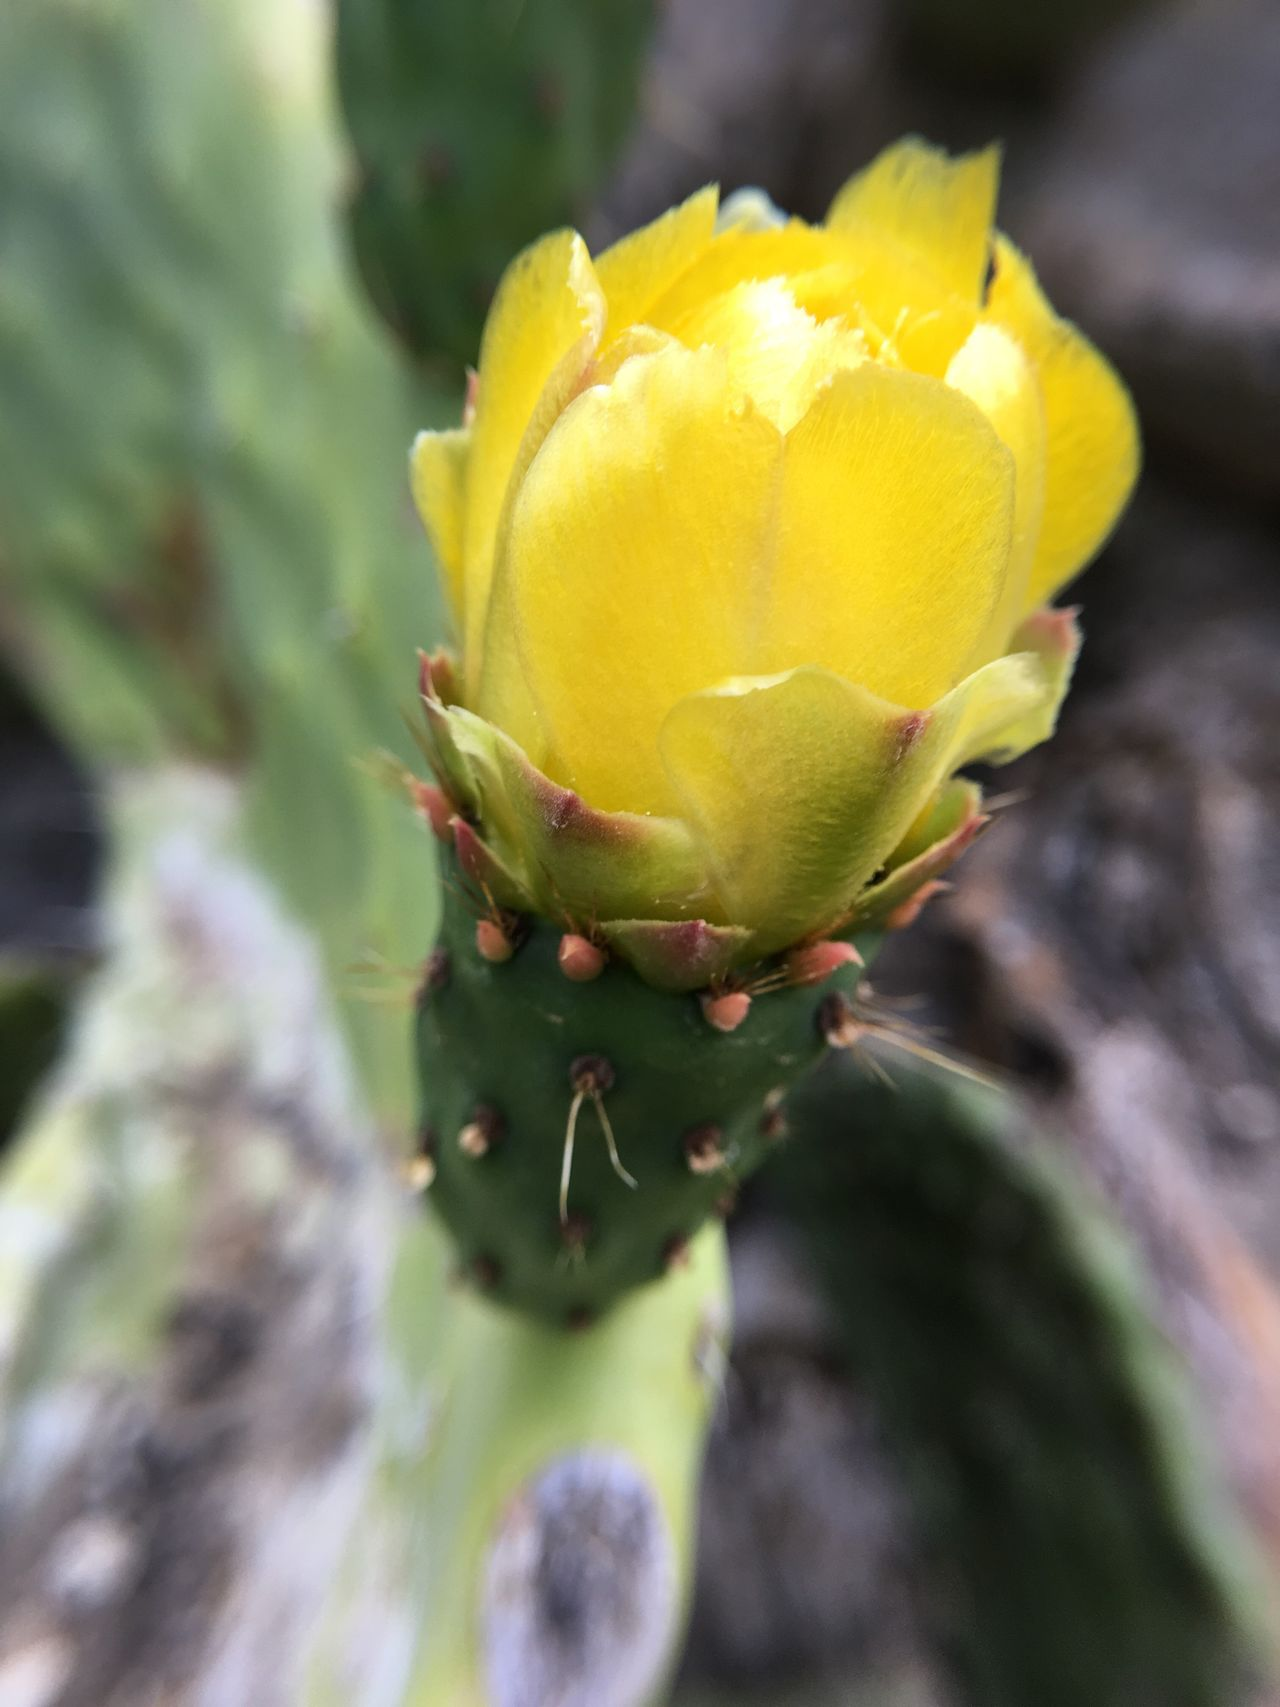 Flower Nature Yellow Growth Beauty In Nature Freshness Fragility Close-up Plant No People Day Cactus Petal Outdoors Flower Head Green Color Prickly Pear Cactus Cactus Cactus Flower Blossom Yellow Flower Yellow Color Macro Southwest